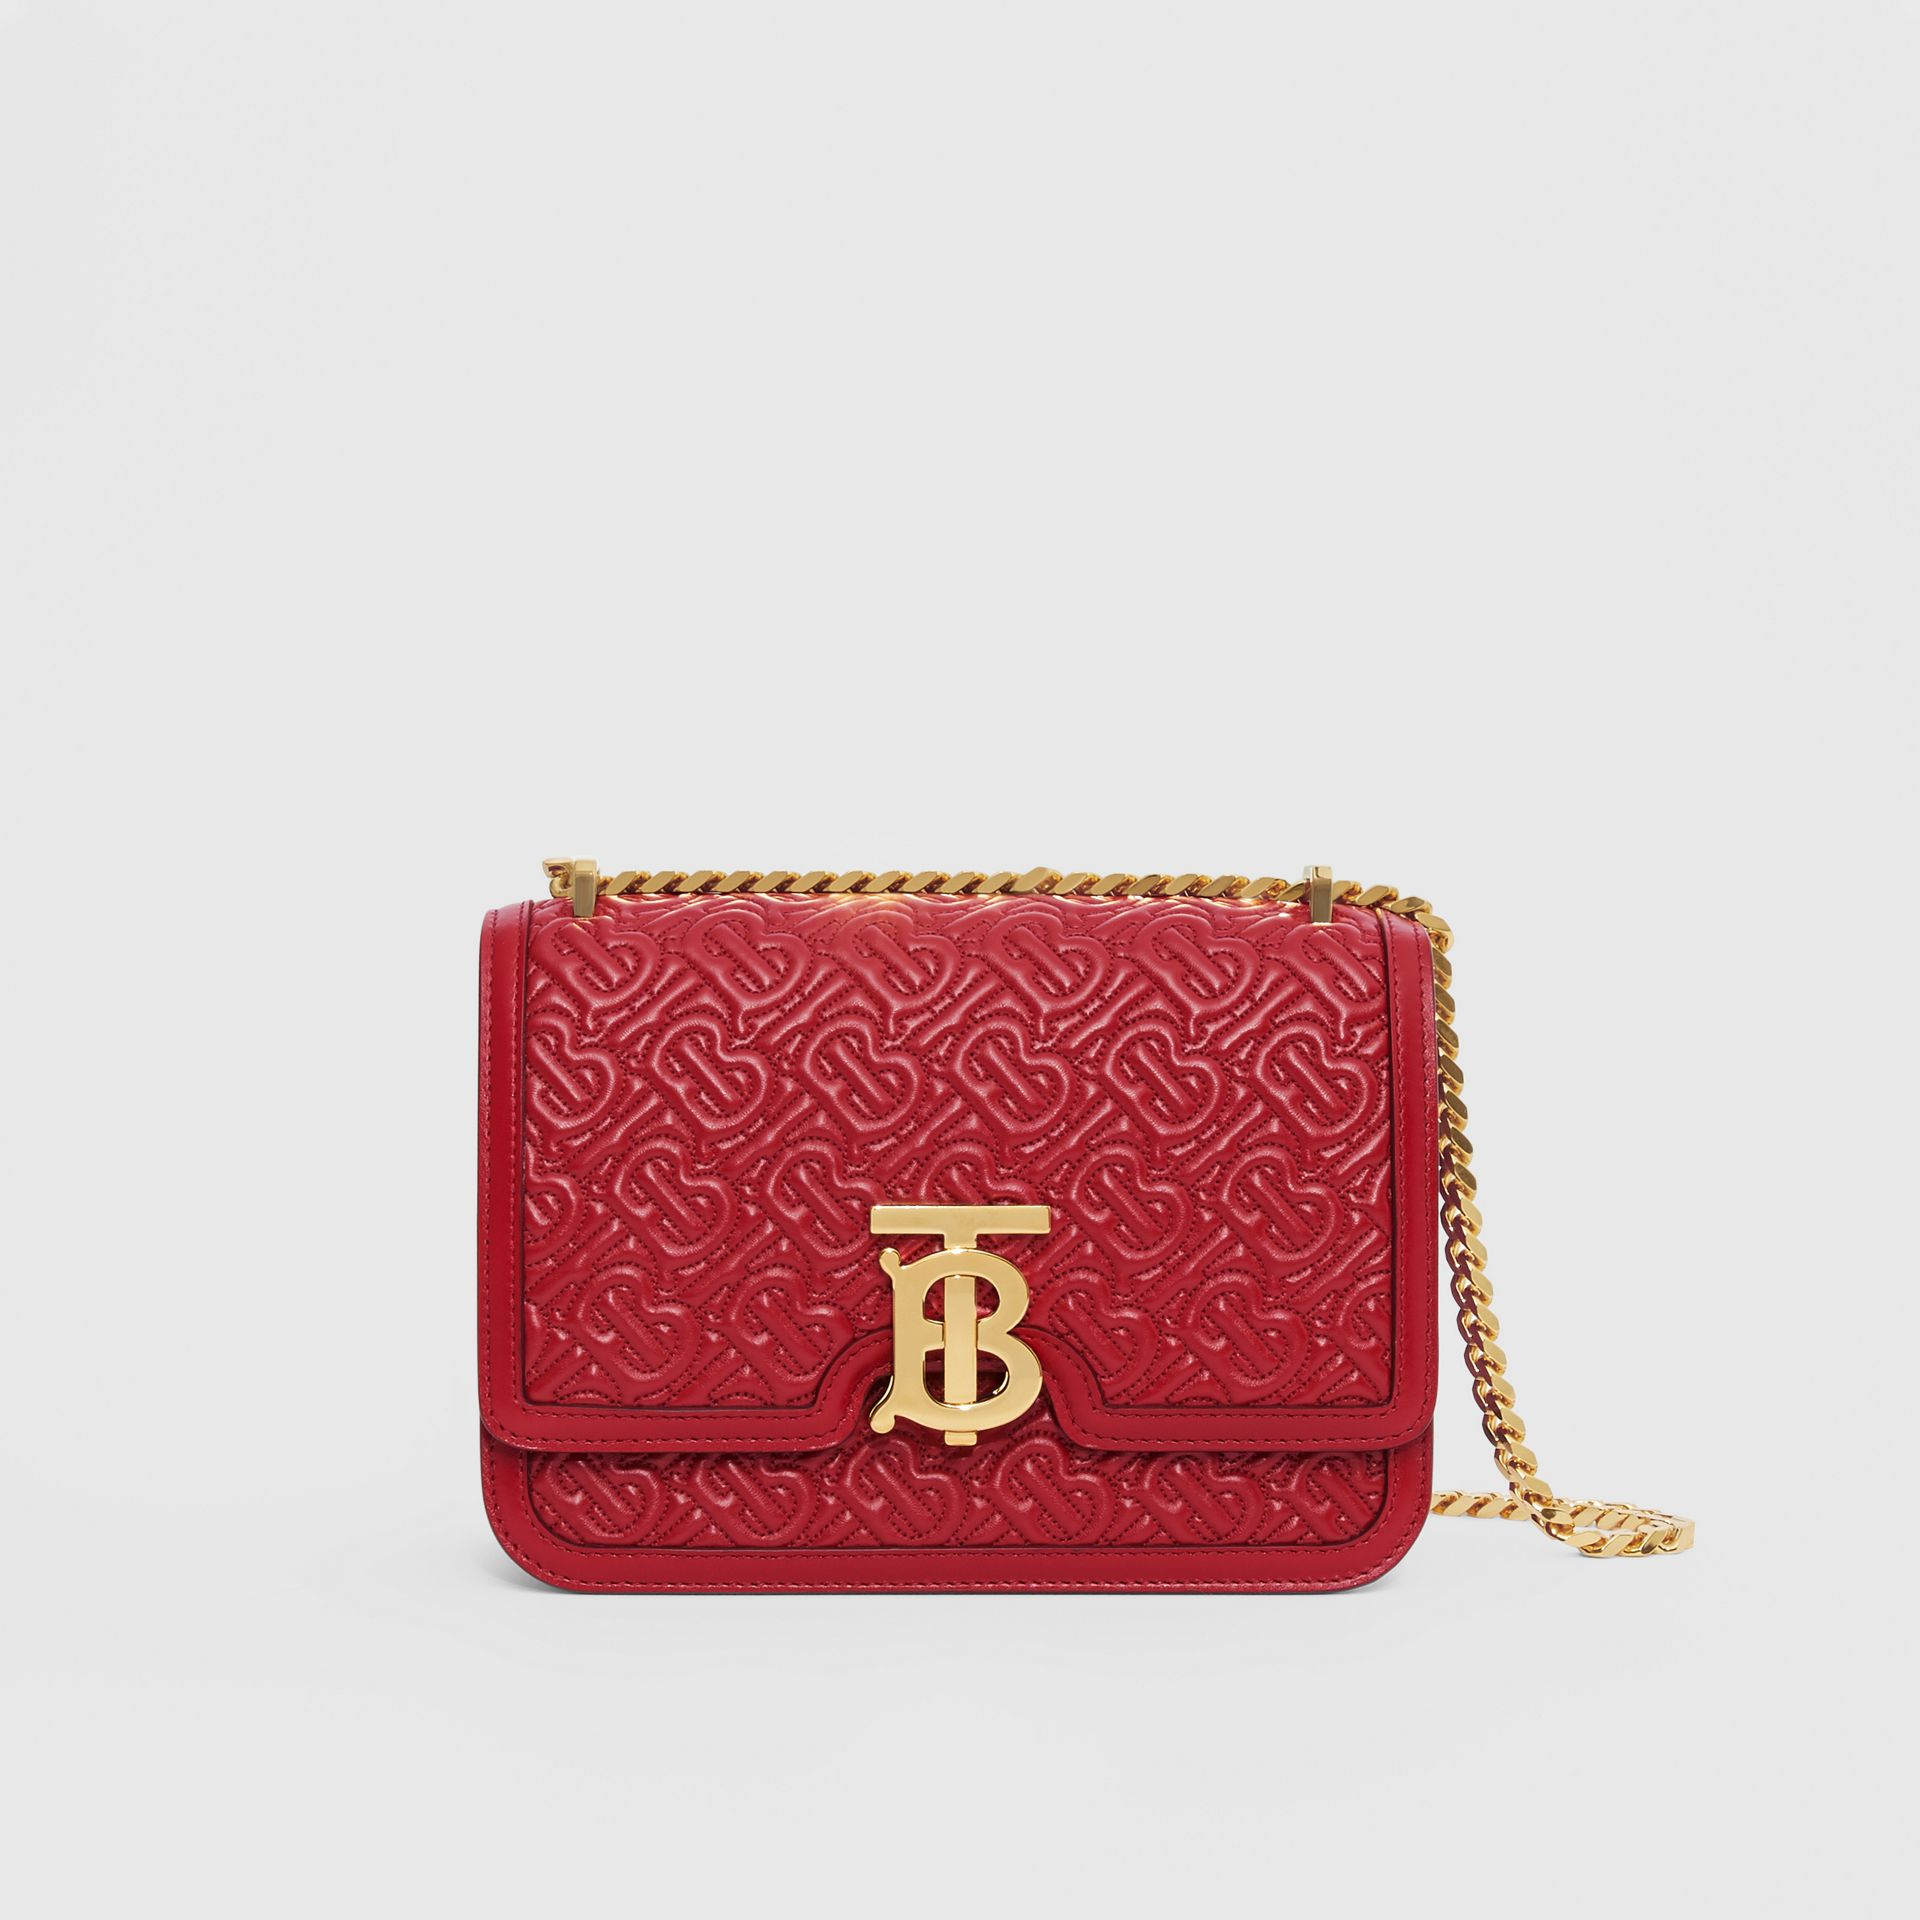 Small Quilted Monogram Lambskin TB Bag in Dark Carmine - Women | Burberry - gallery image 0